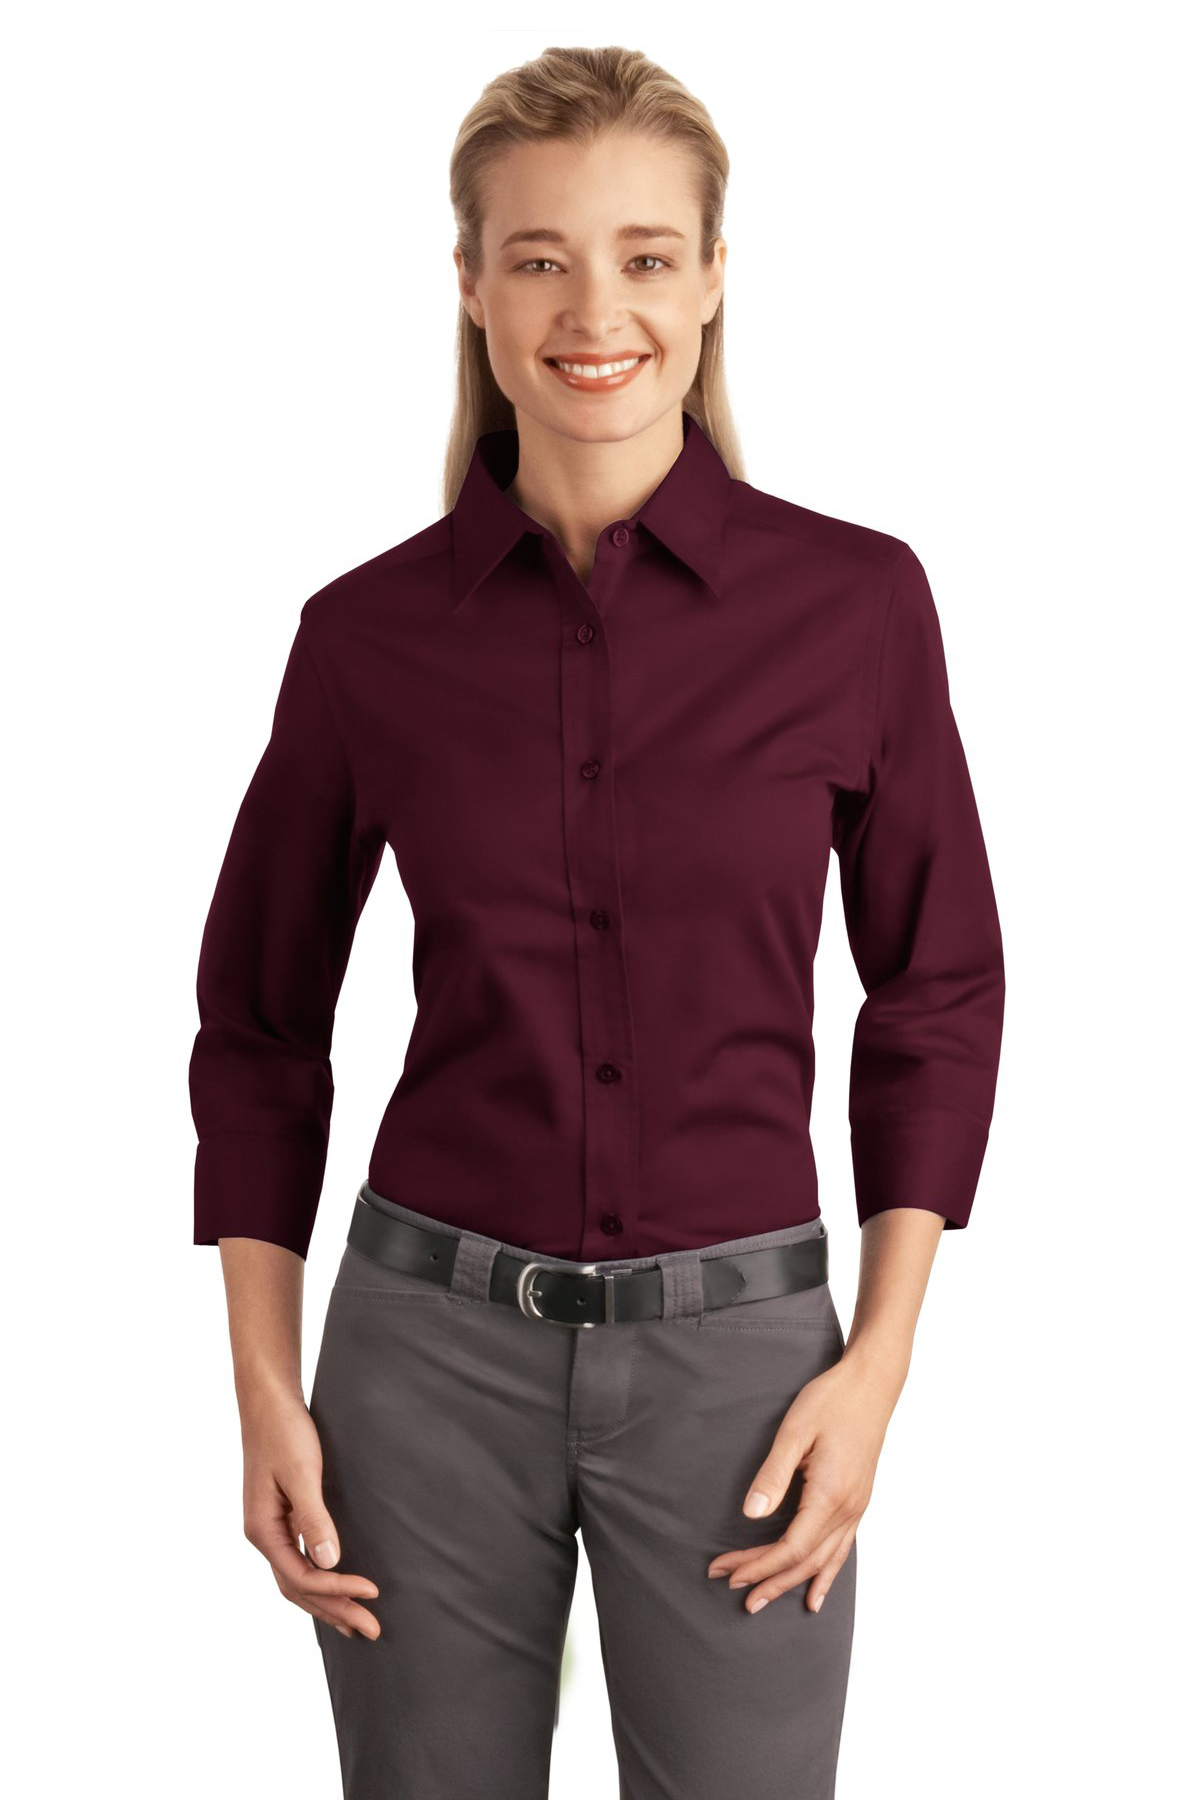 Woven-Shirts-Easy-Care-9